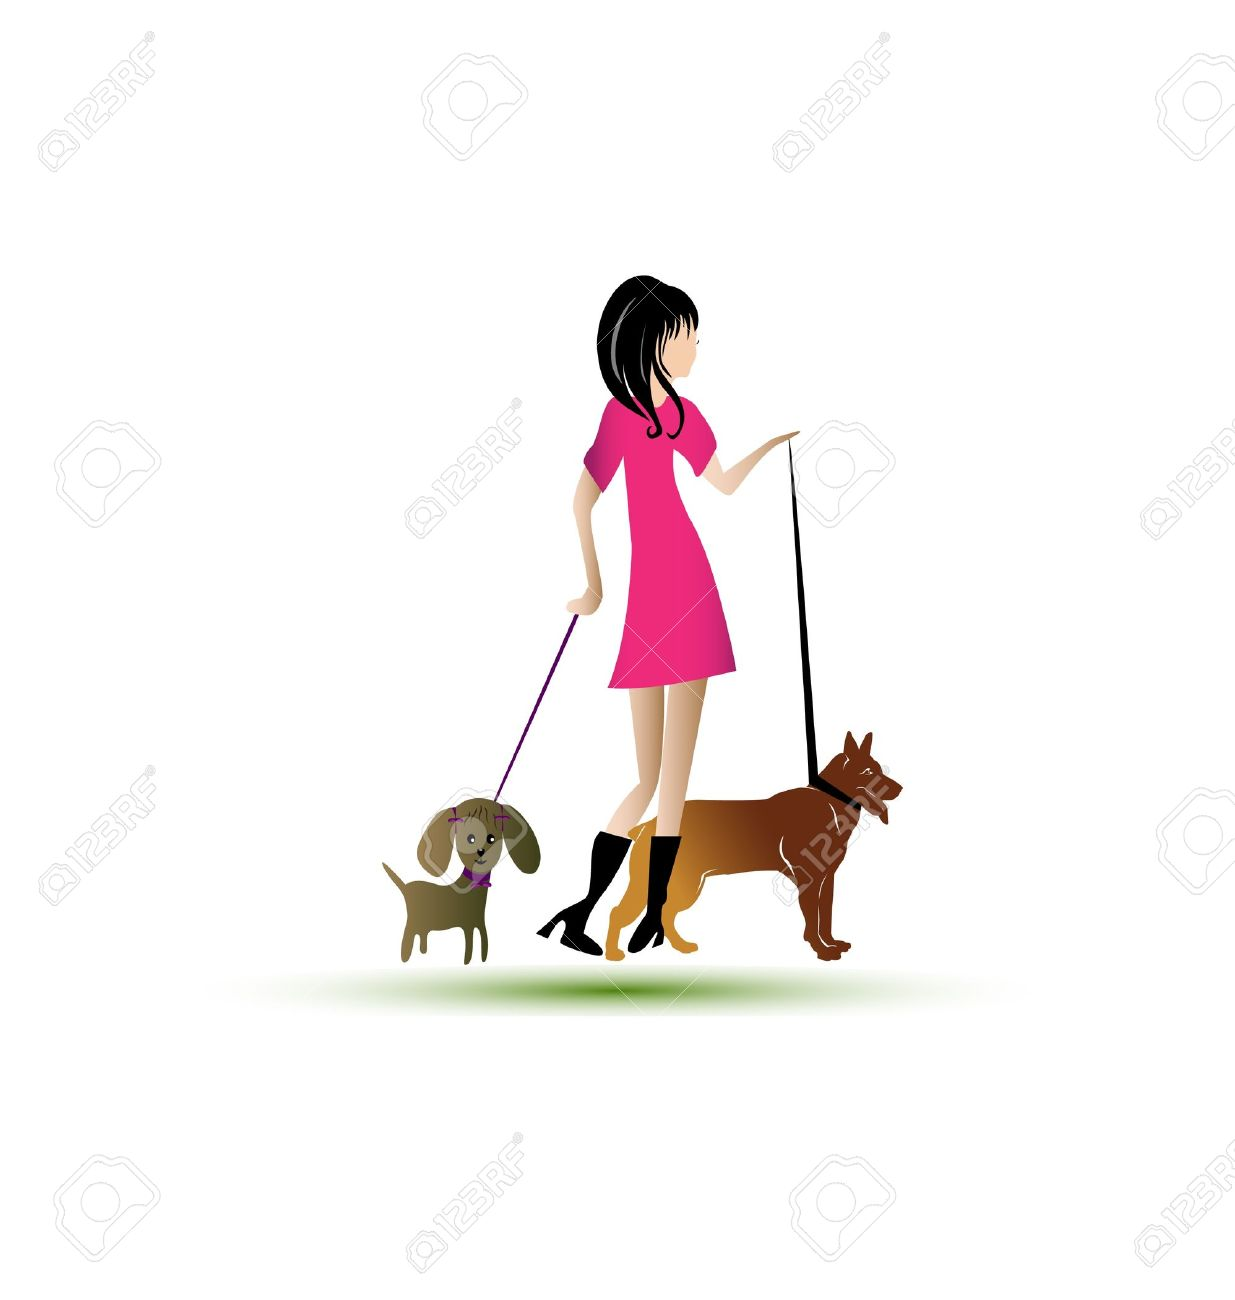 Image result for caricature of lady walking a dog